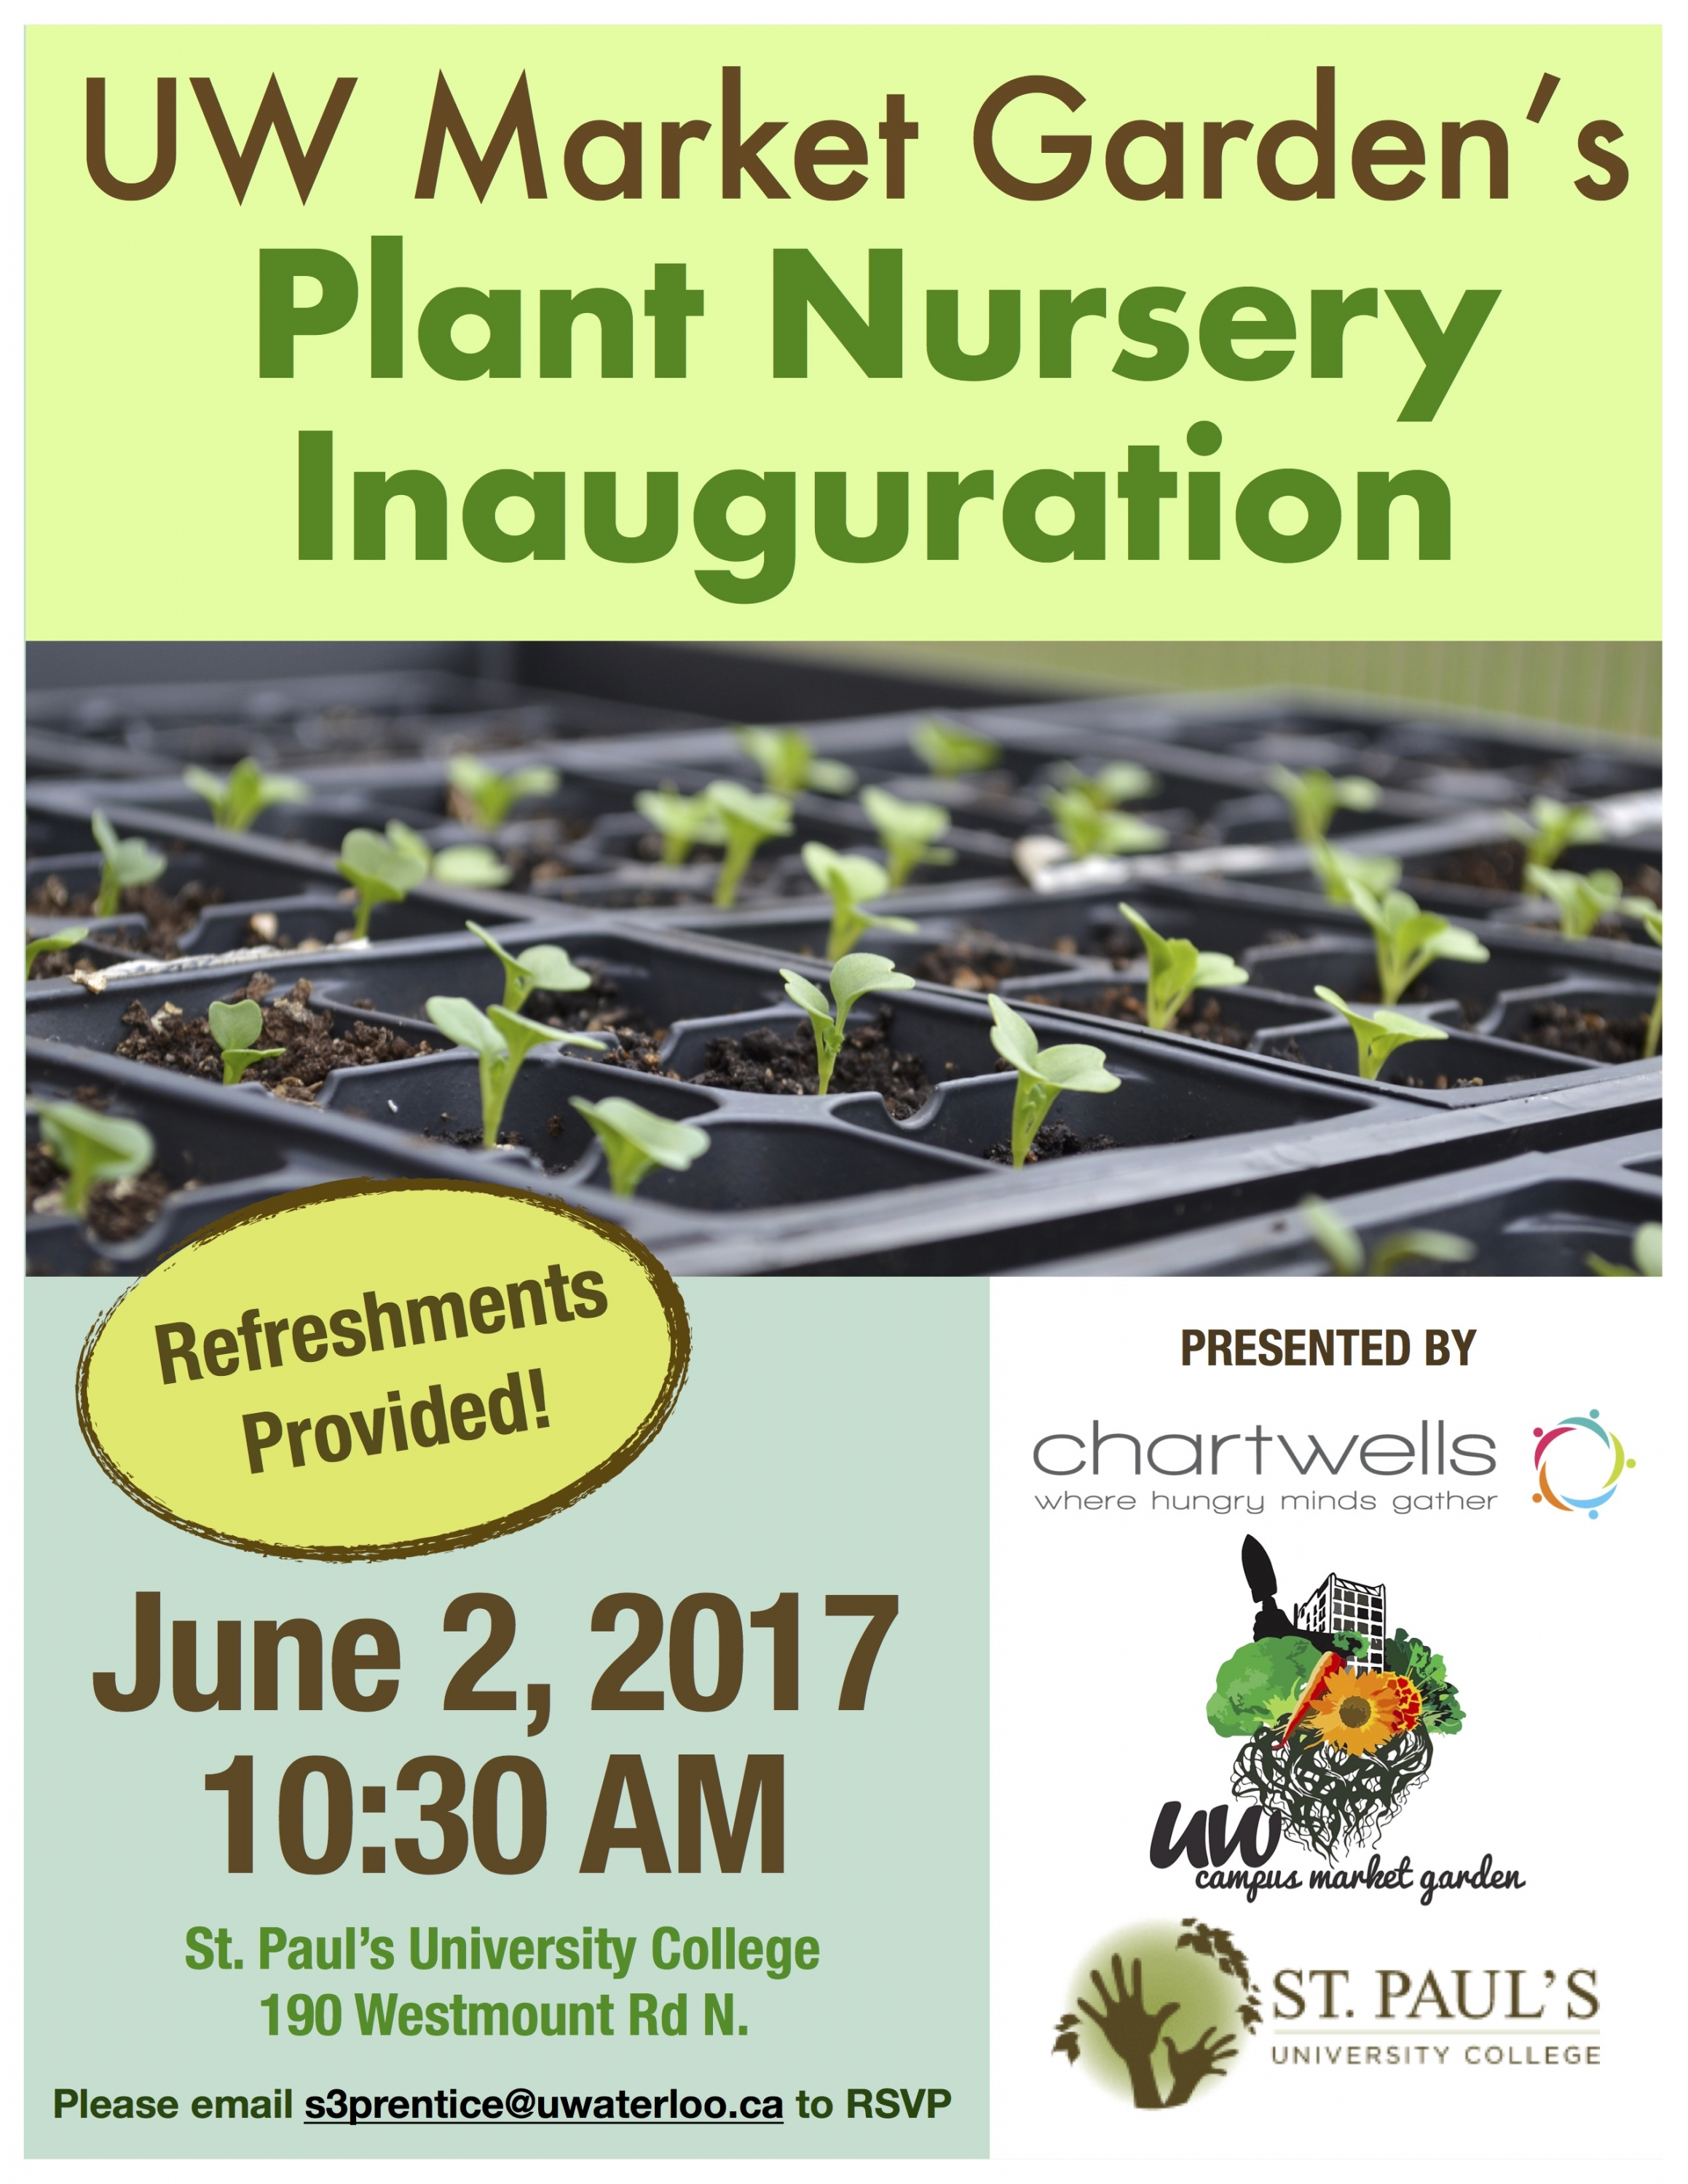 Poster showcasing Market Garden opening with image of plants growing in planters